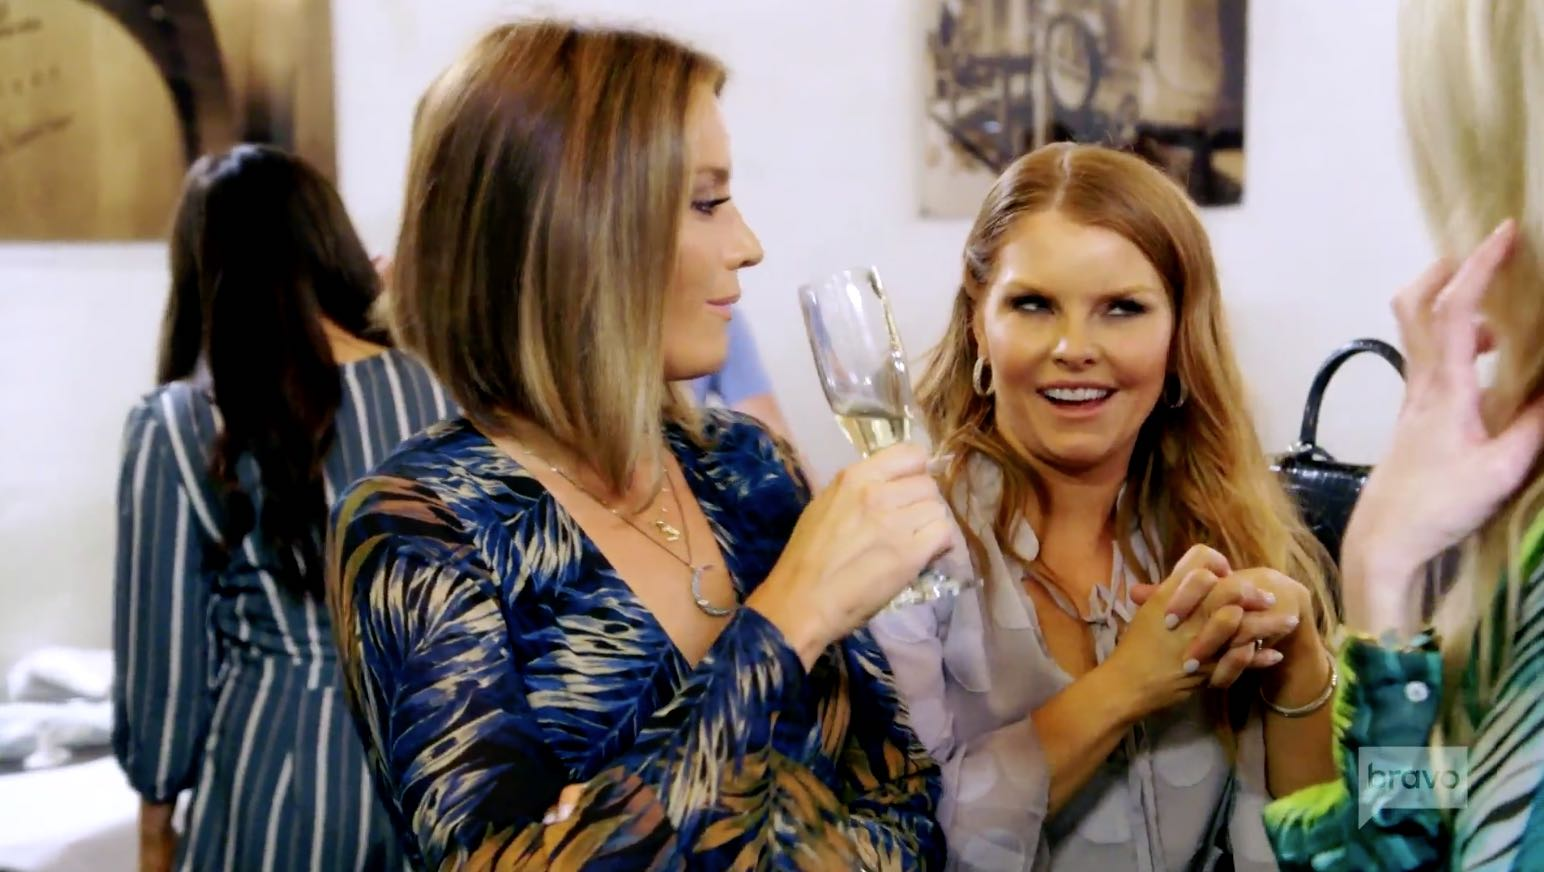 Real Housewives Of Dallas - Brandi is hurt by Cary & Kameron